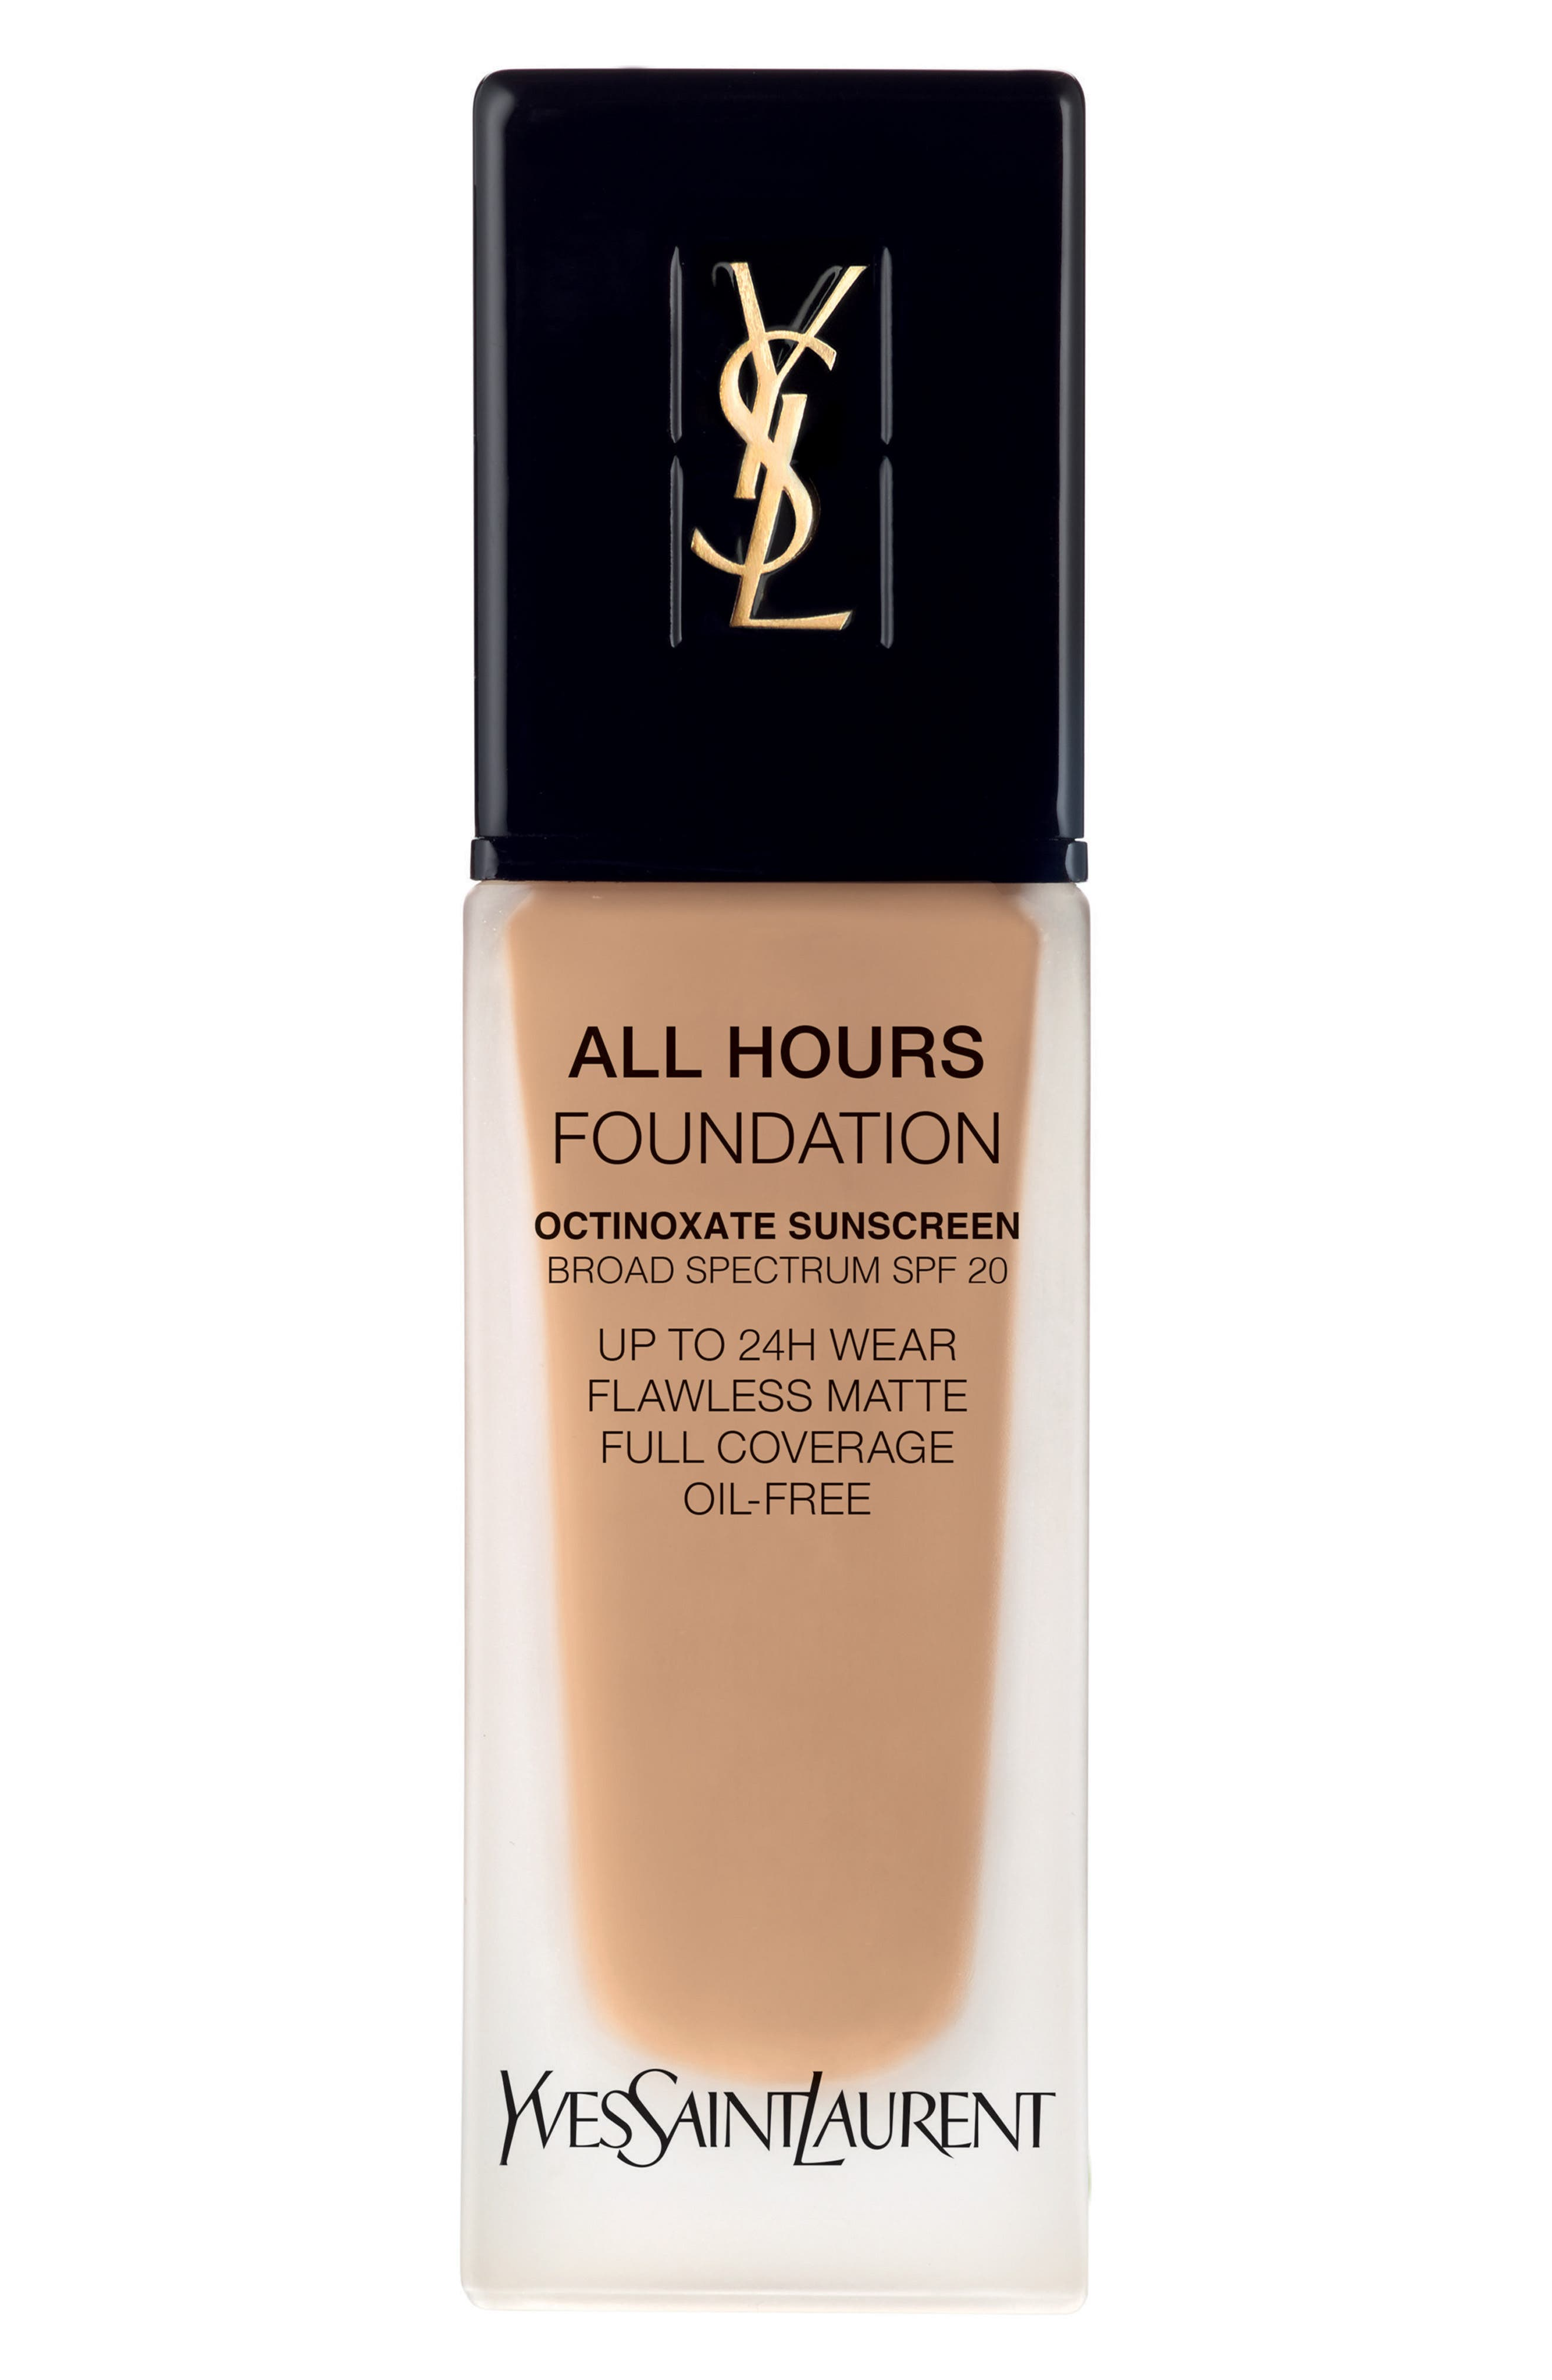 Yves Saint Laurent All Hours Full Coverage Matte Foundation Spf 20 - Bd45 Warm Bisque